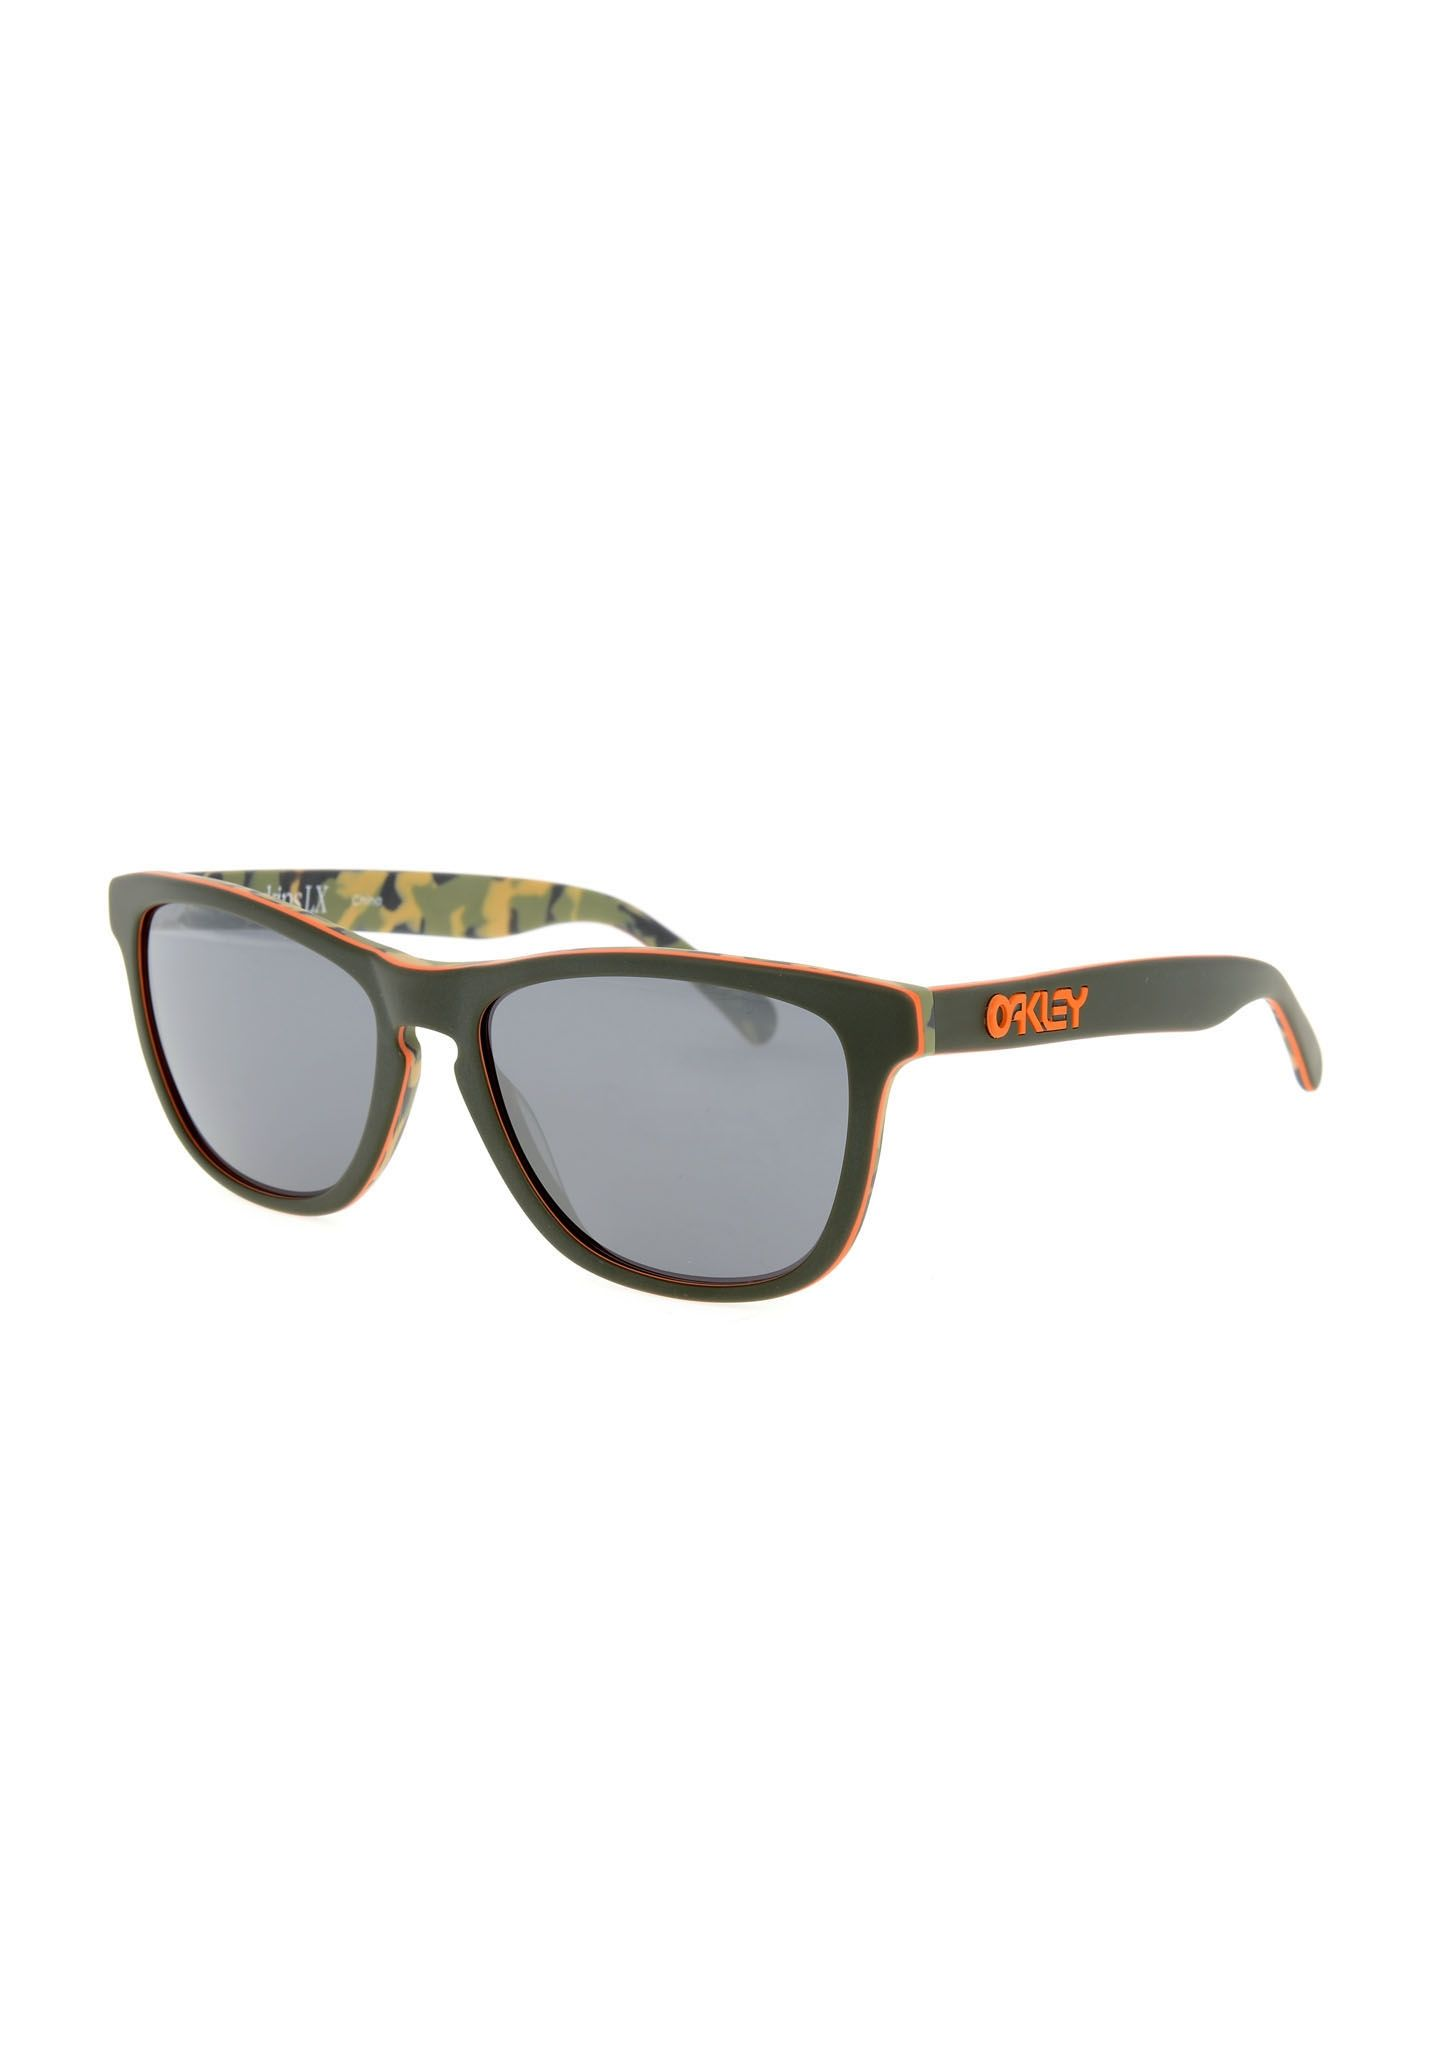 992cb8284d1 Camo Oakley Sunglasses For Men « Heritage Malta